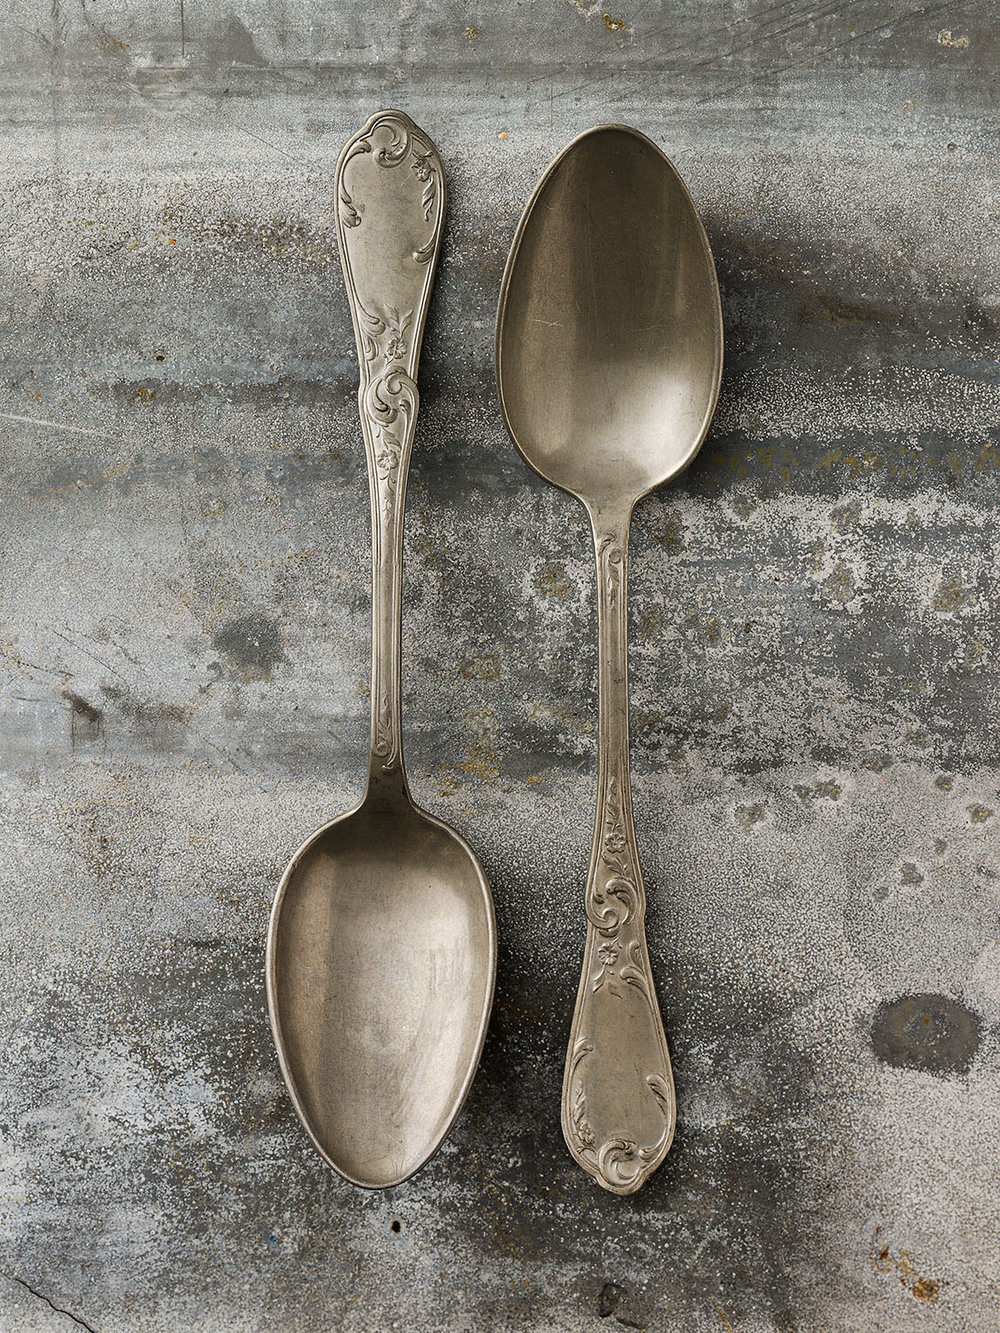 #4 Two French Spoons